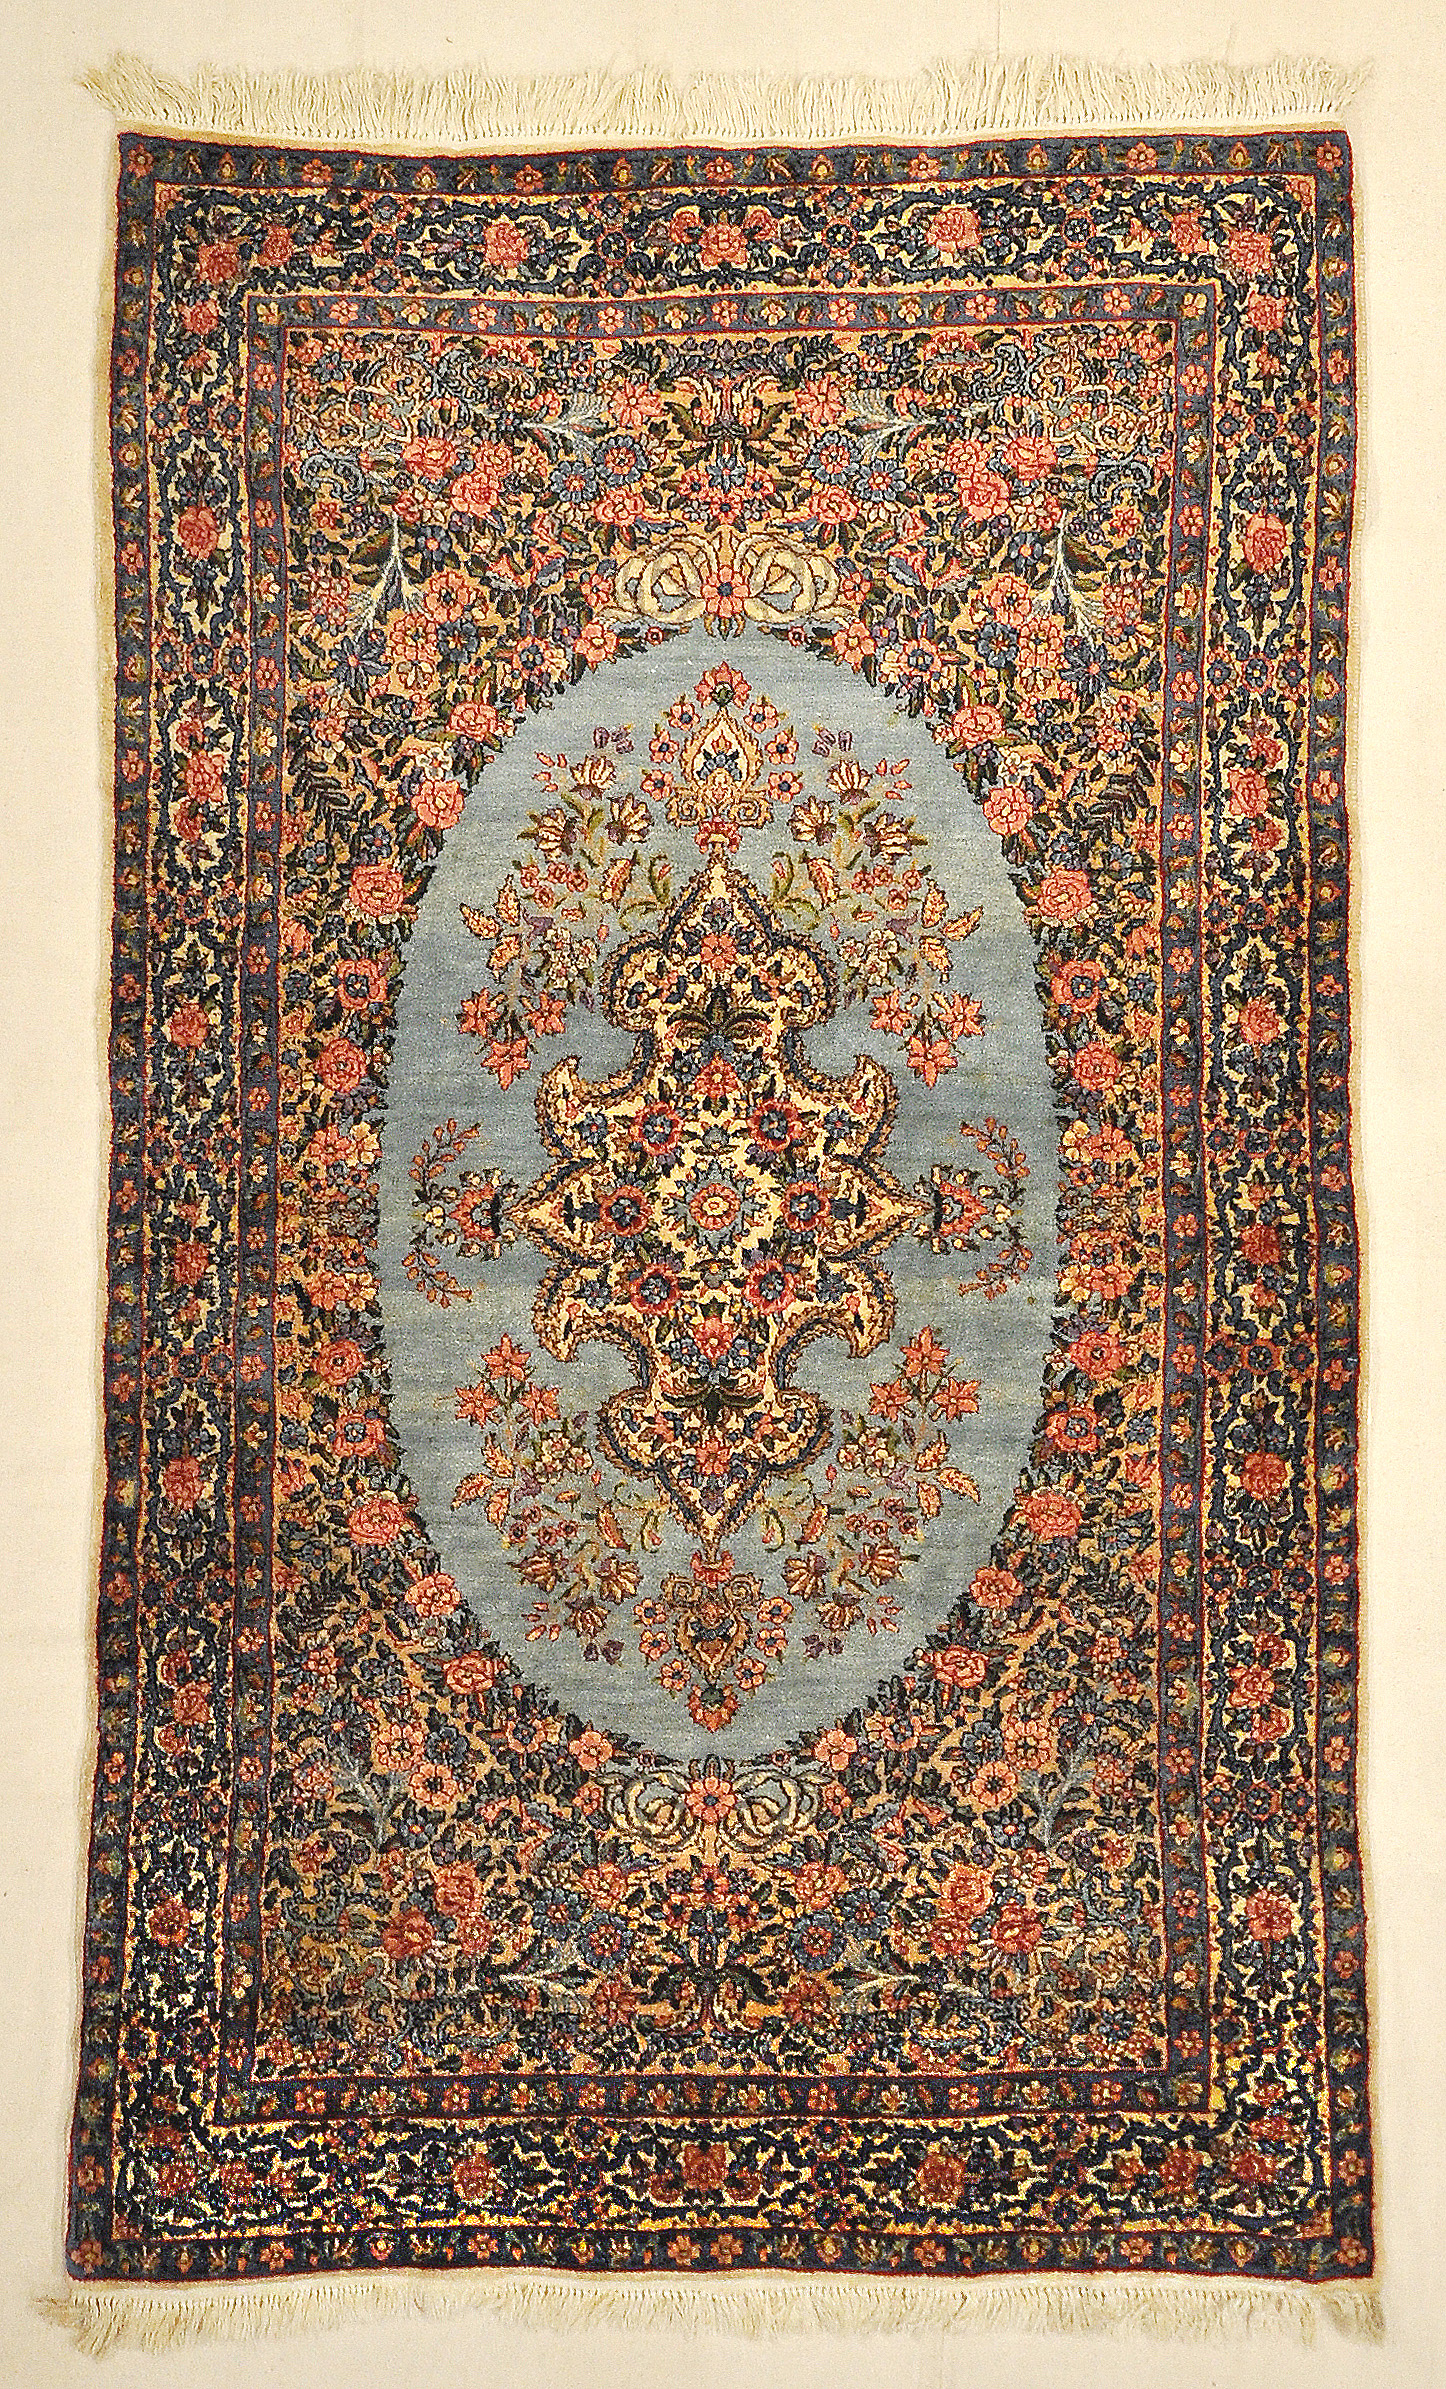 Antique Persian Kerman Rug Garden of Paradise with 1001 Flowers Around Pool of Water Genuine Carpet Art Santa Barbara Design Center Rugs and More